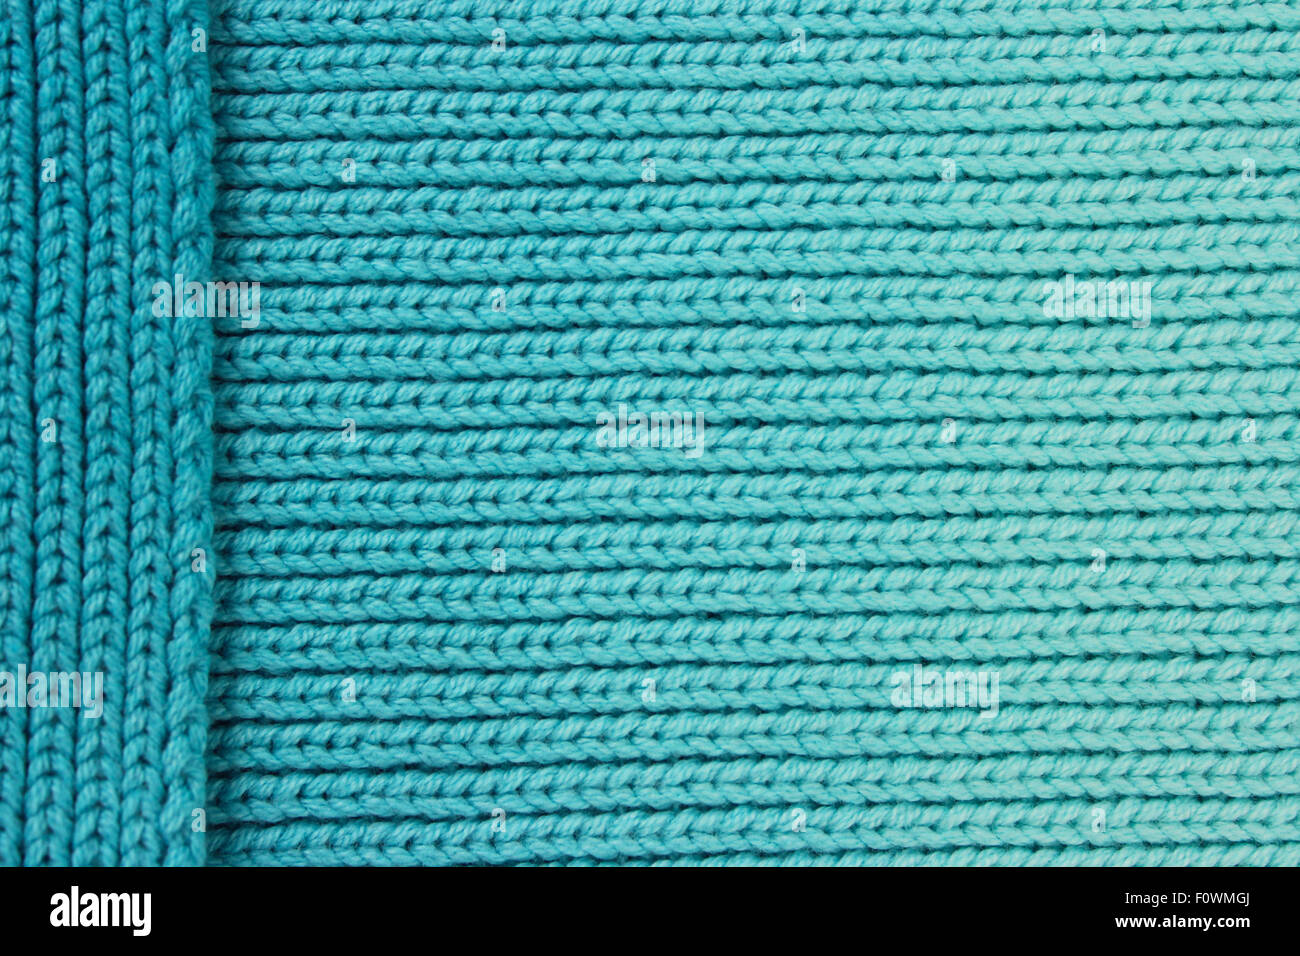 Turquoise wool background with layered side piece - Stock Image